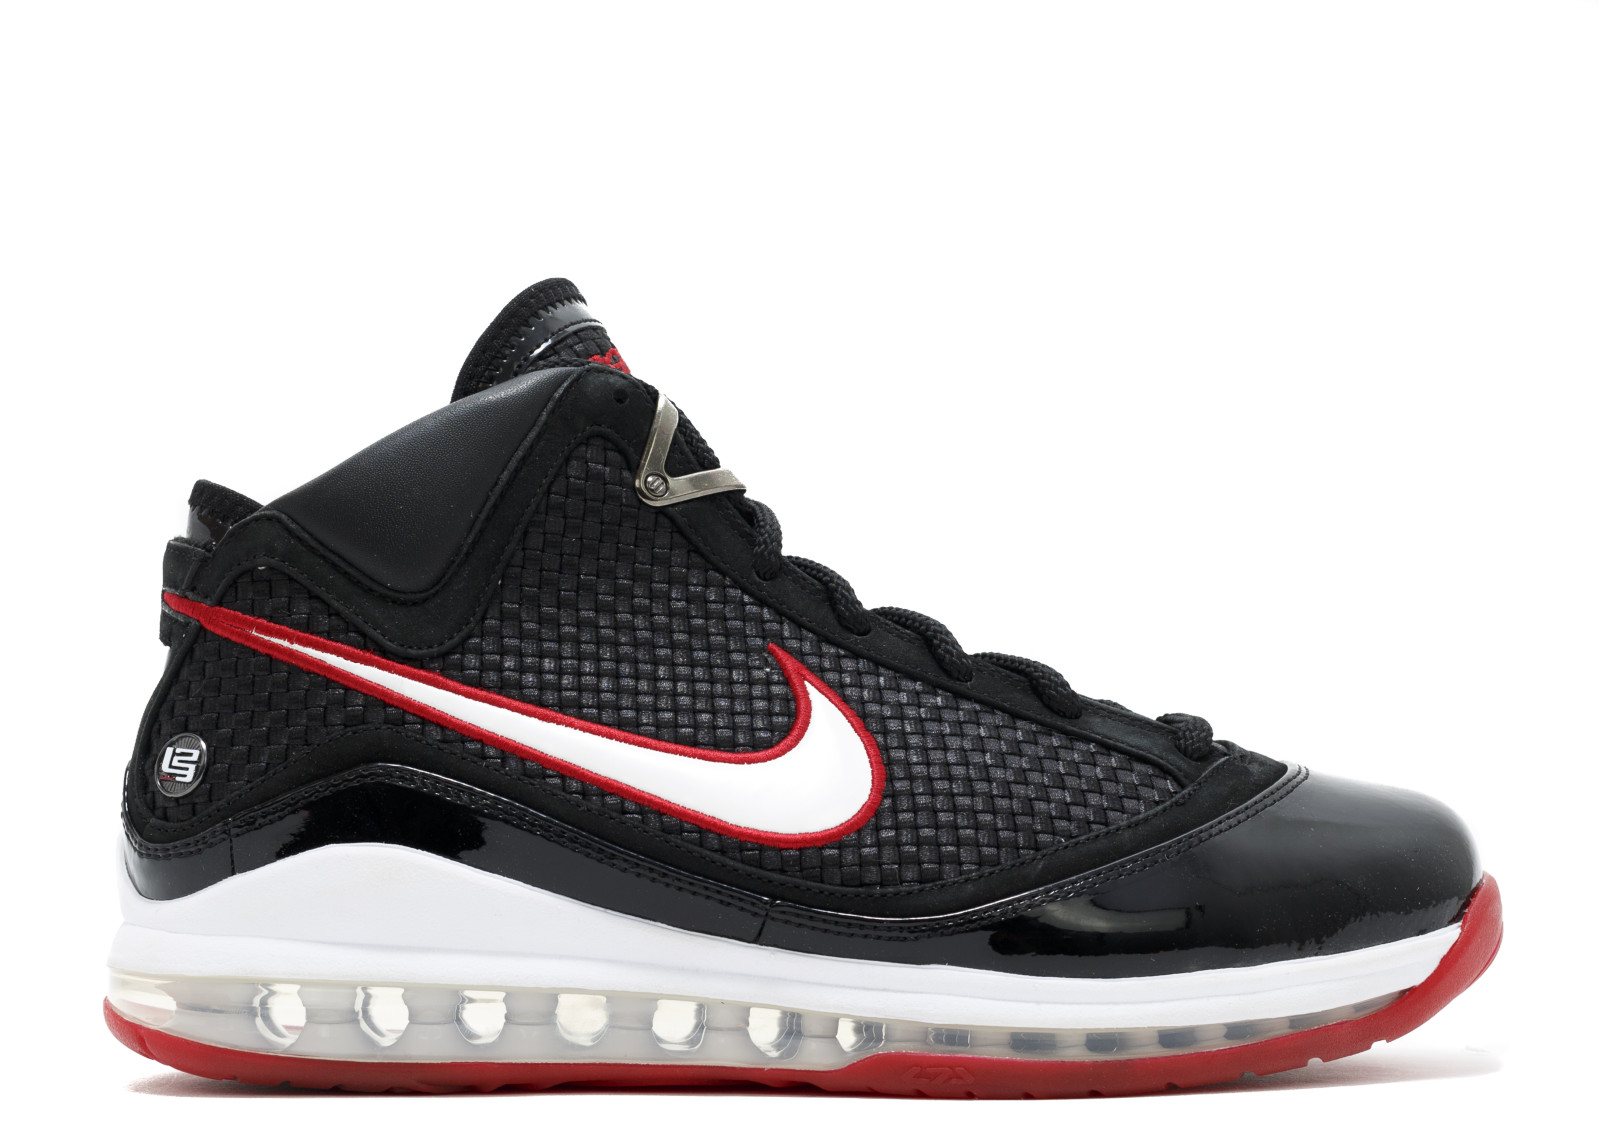 63611743018-nike-lebron-7-heroes-pack-black-red-white-042549_1.jpg